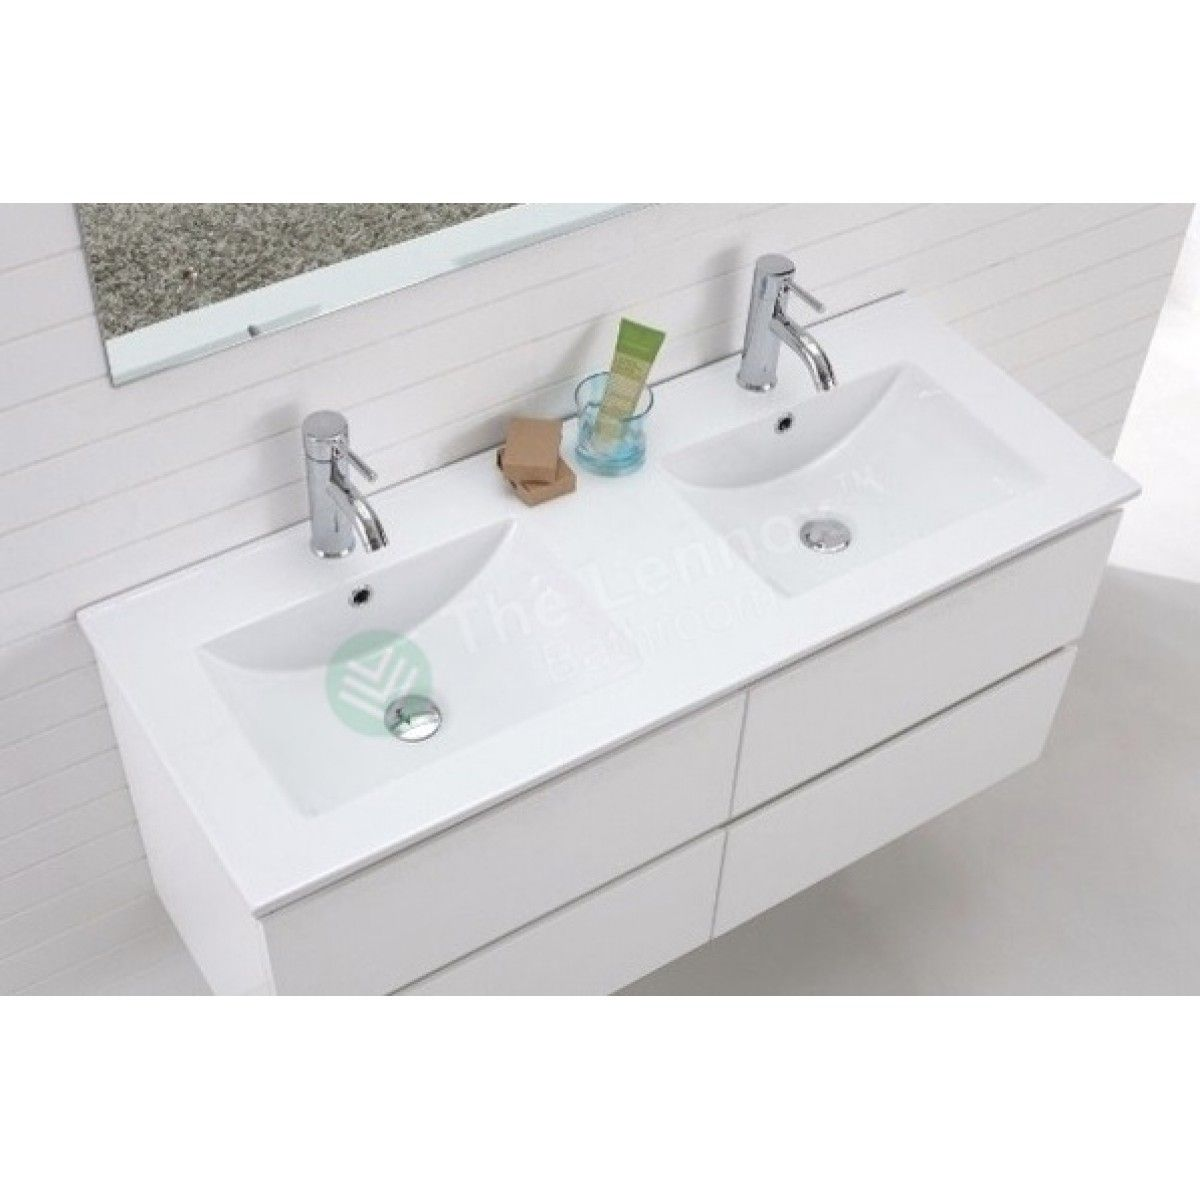 Vanity Asron Series 1200mm White Double White Bathroom Vanity Modern Bathroom Furniture Design Modern Bathroom Vanity